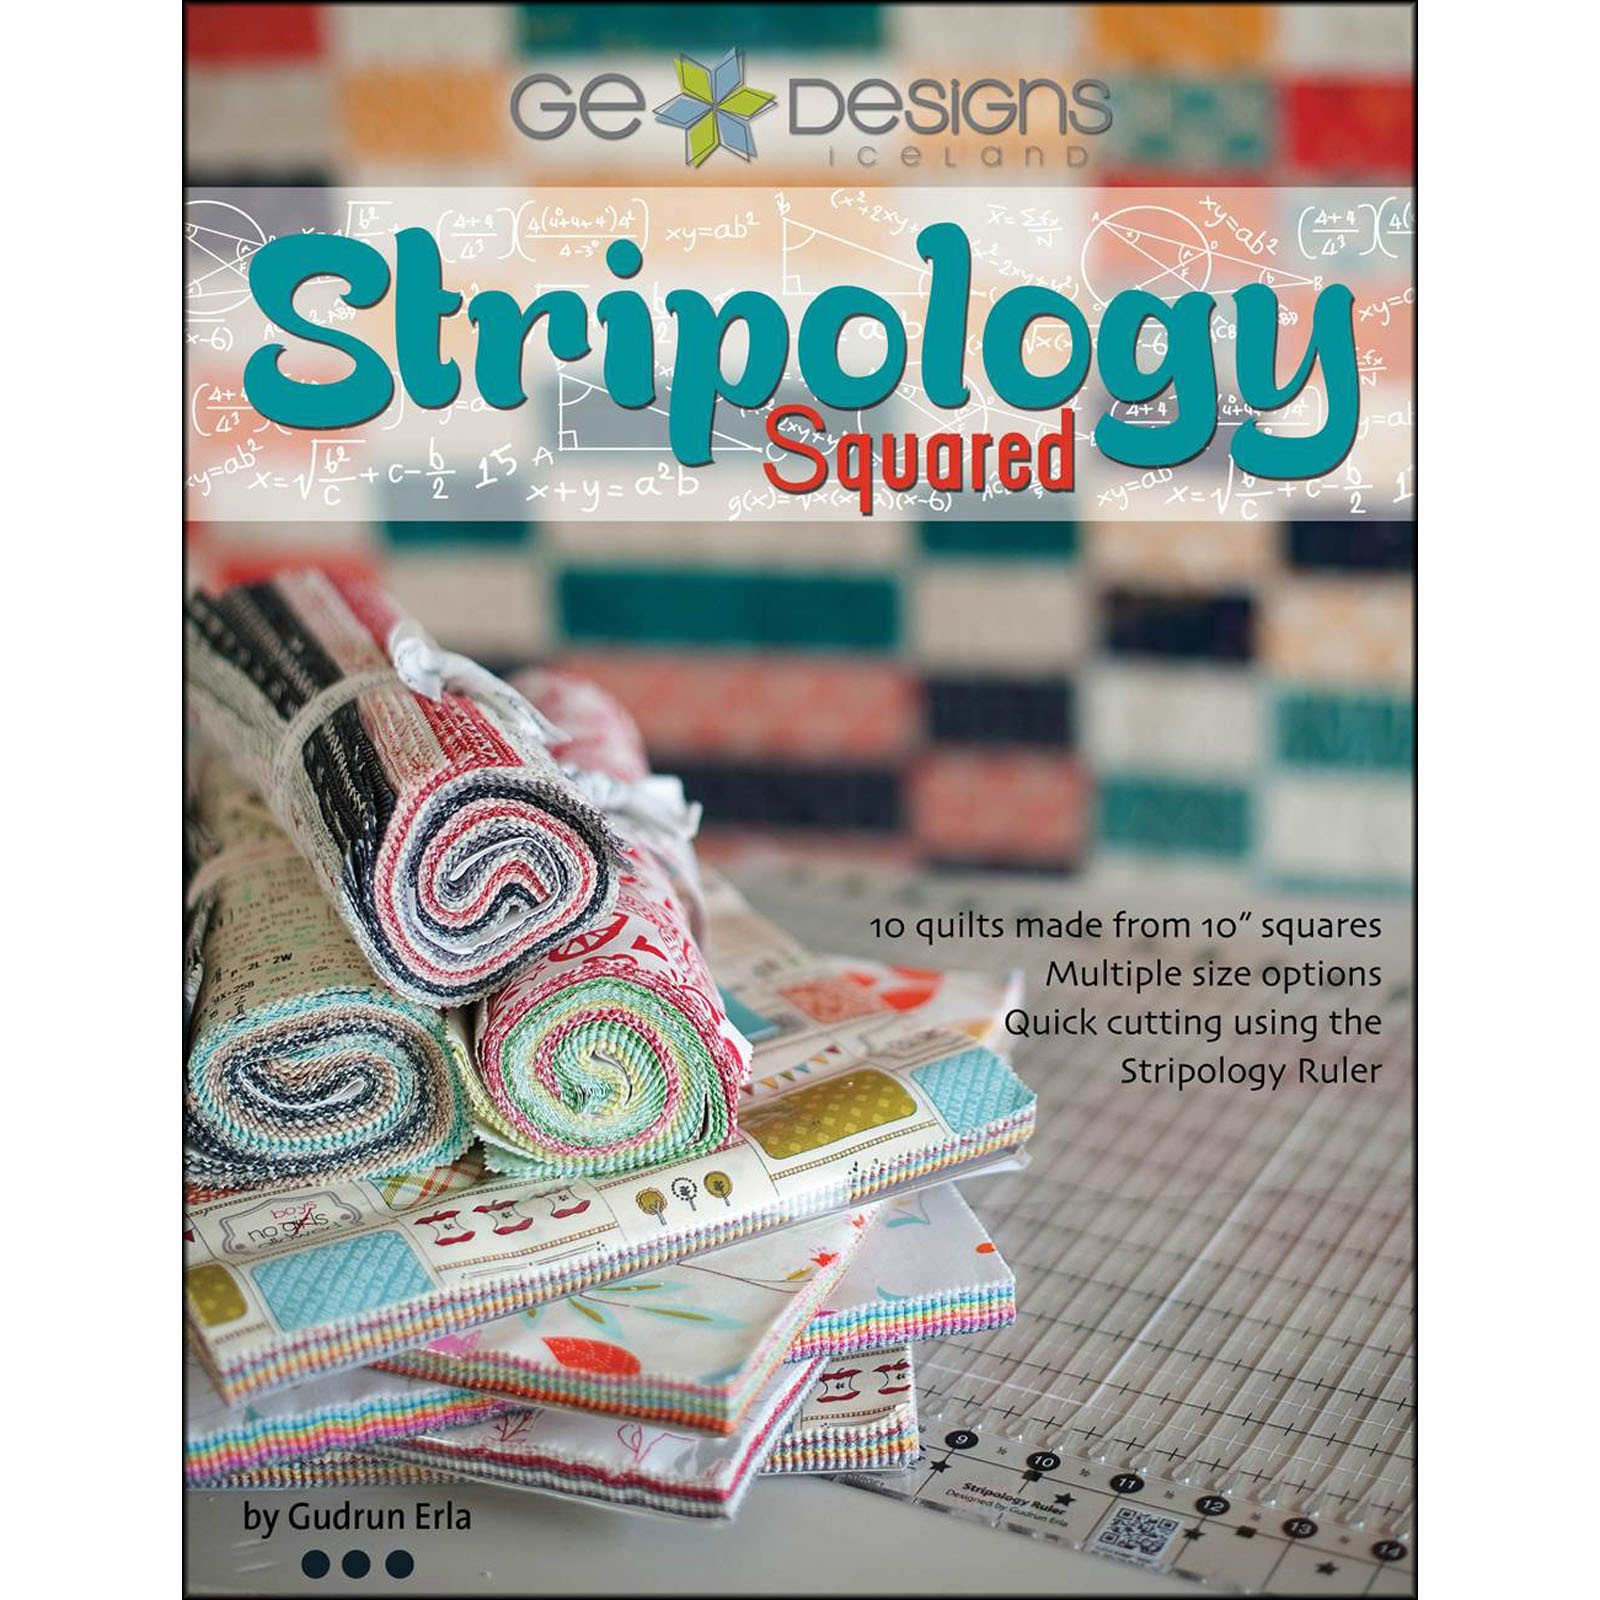 Stripology Squared<br/>GE Designs